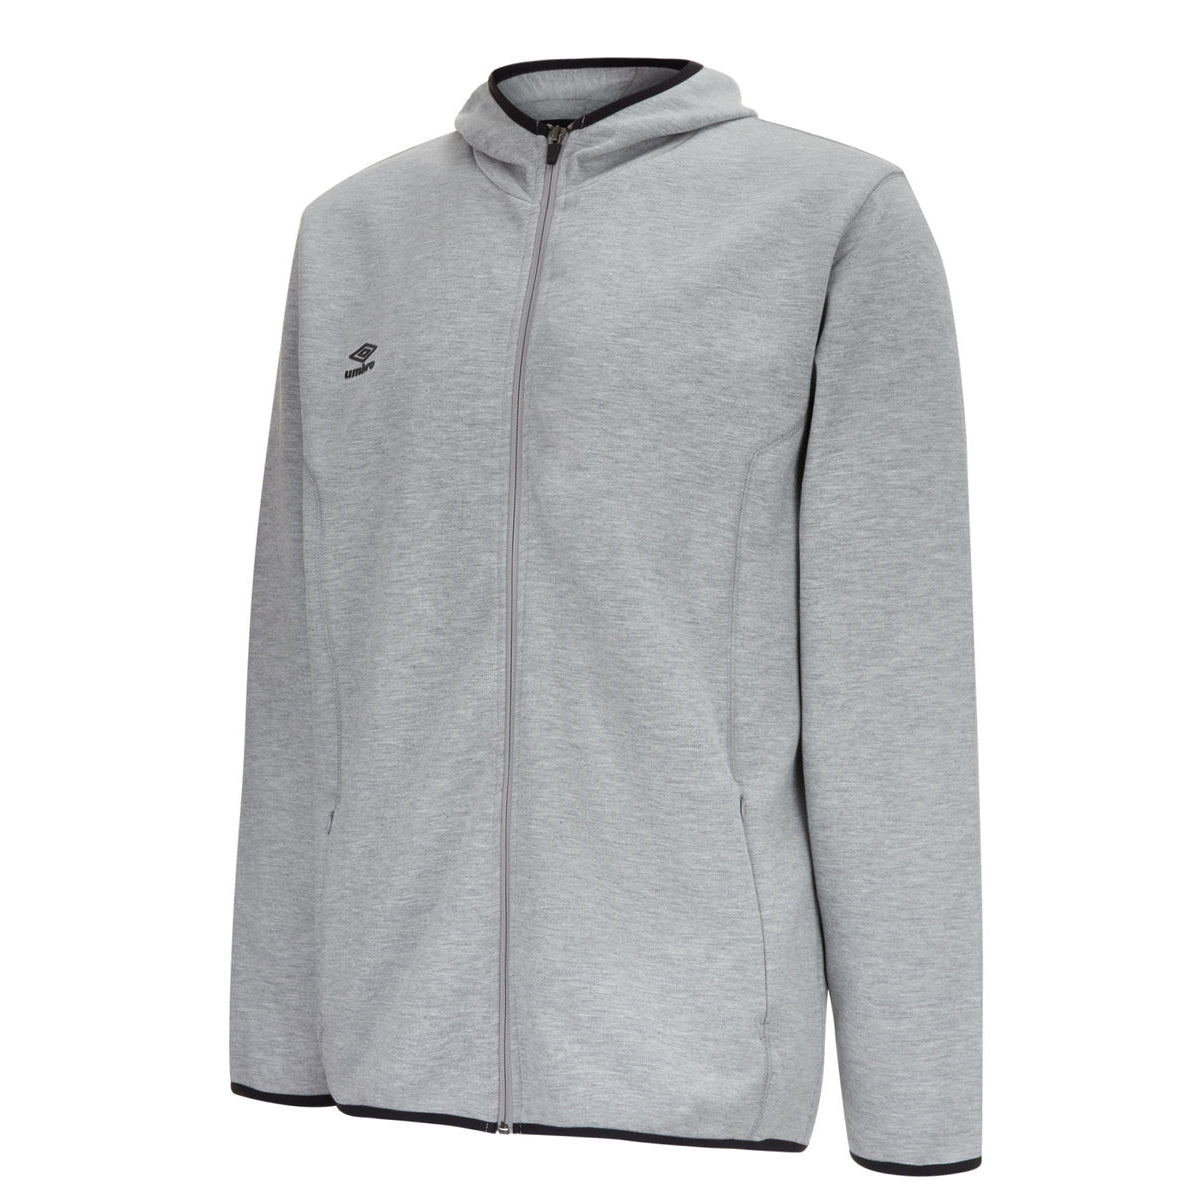 Umbro Pro Fleece Hoody in grey marl with full front zip, black contrast piping on hood, pocket and hem